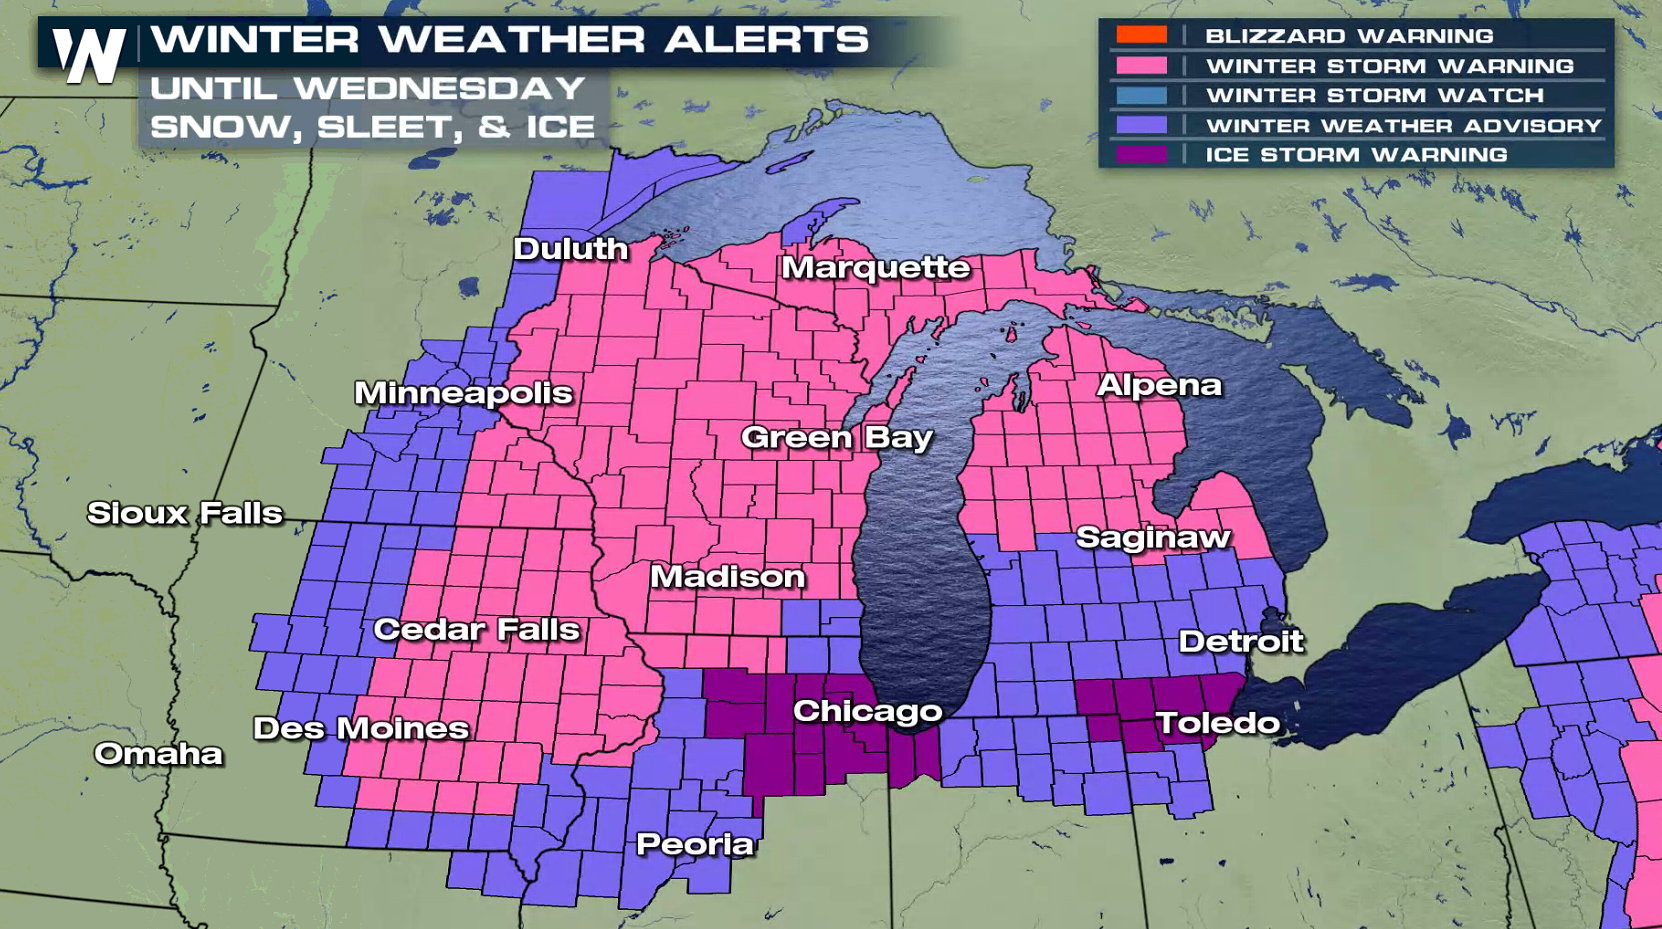 Winter Storm Warning Bring It On Says >> Another Storm To Impact The Central U S With Snow And Ice